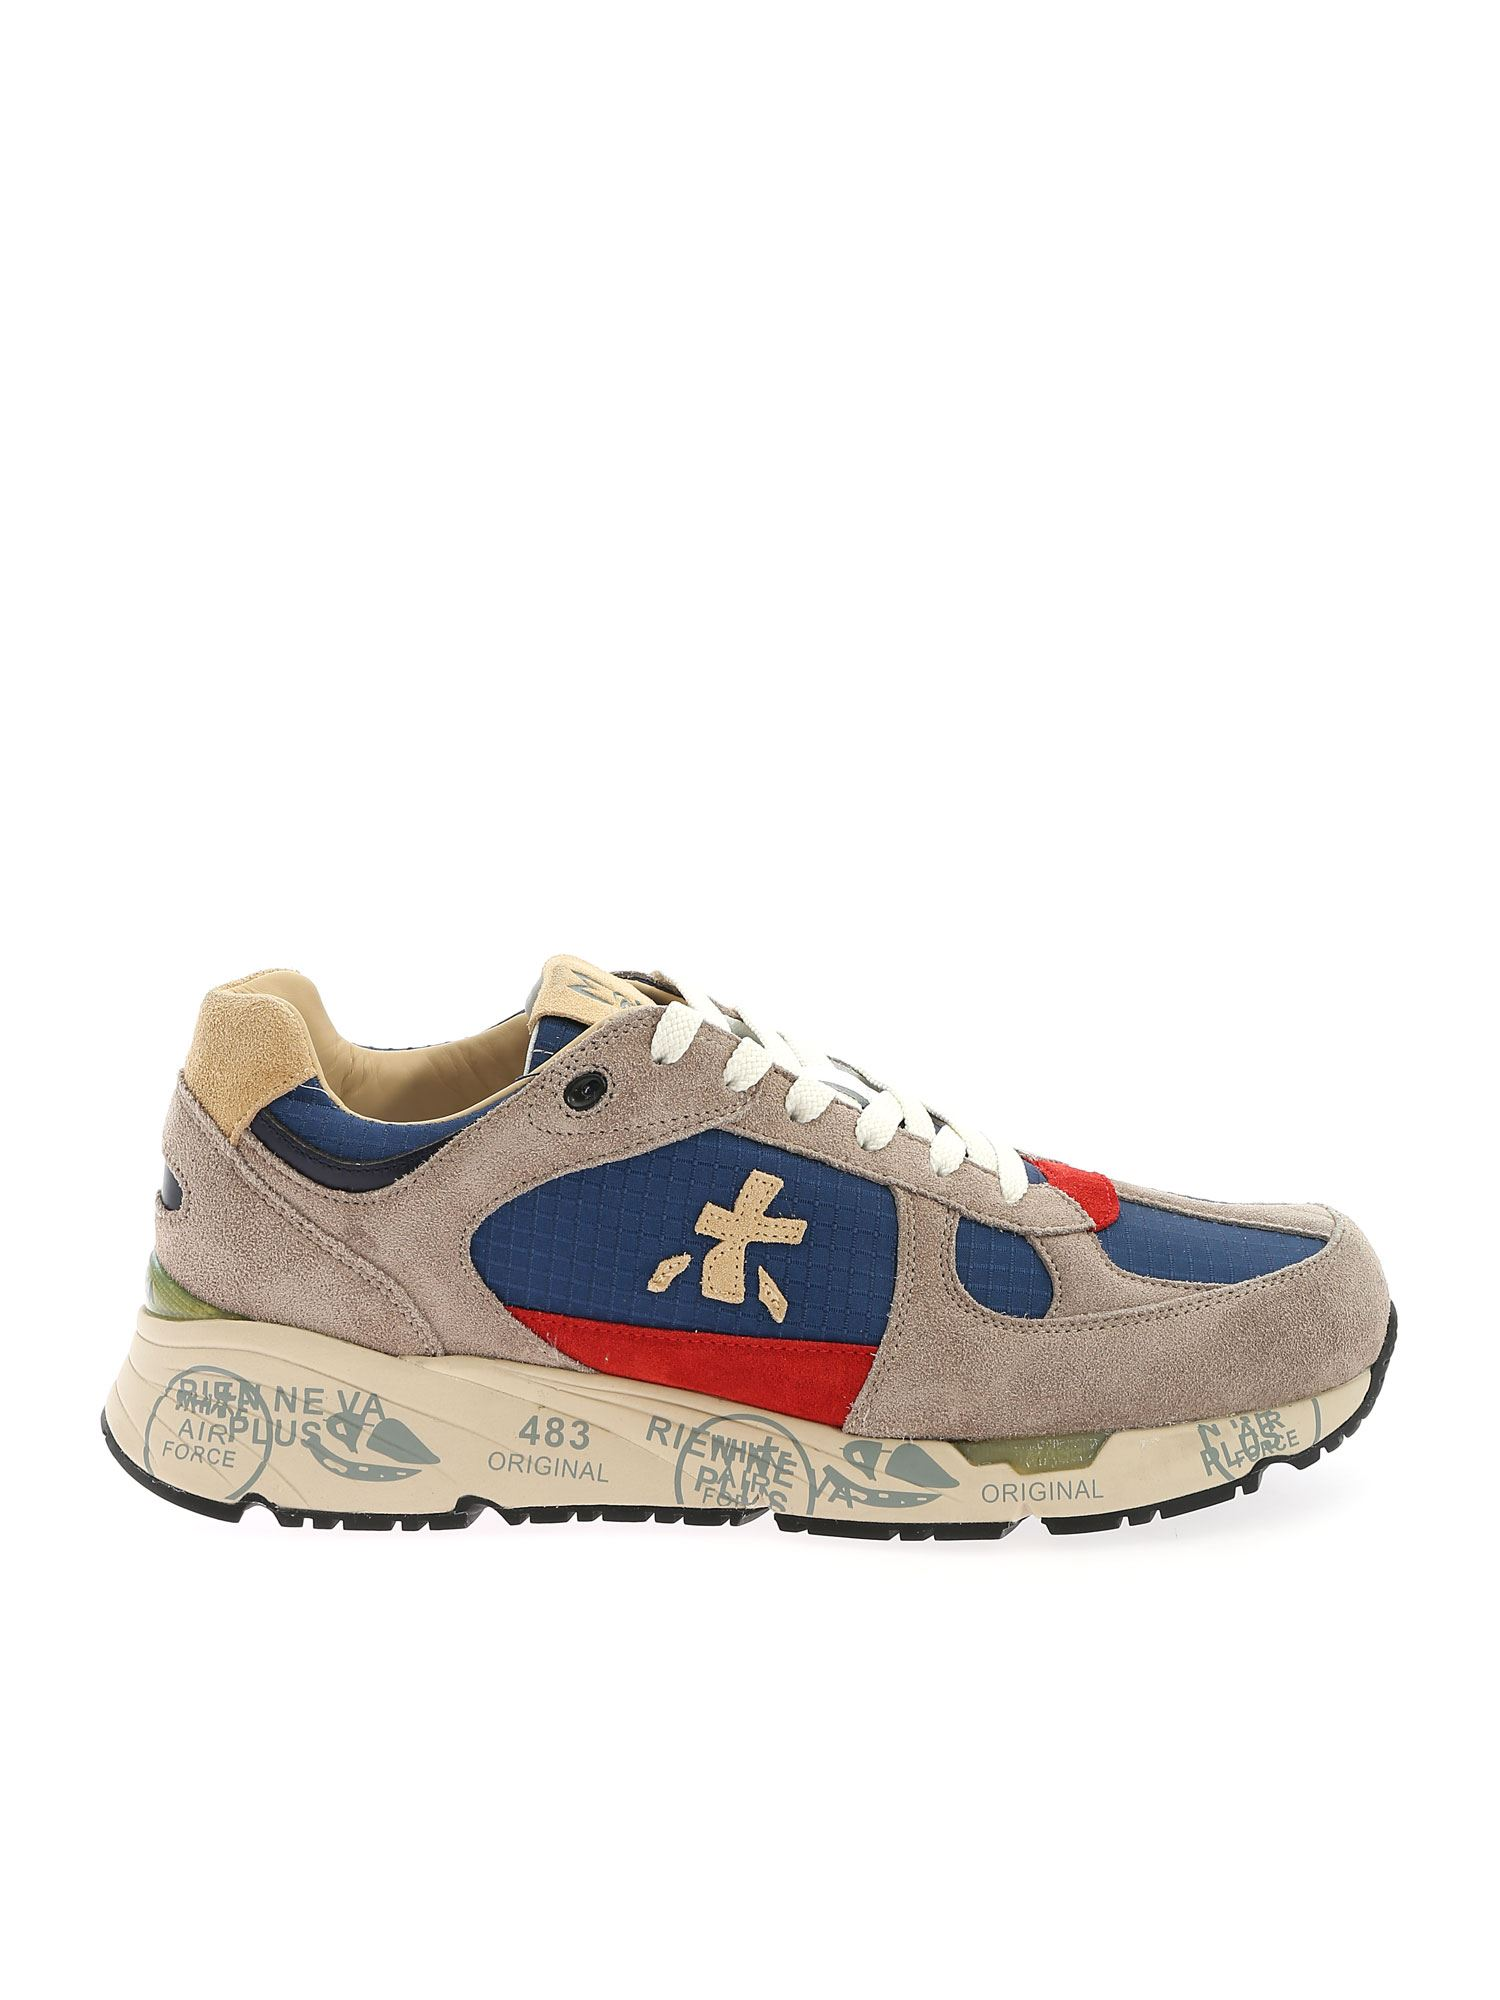 Premiata Sneakers MASE SNEAKERS IN GREY AND BLUE